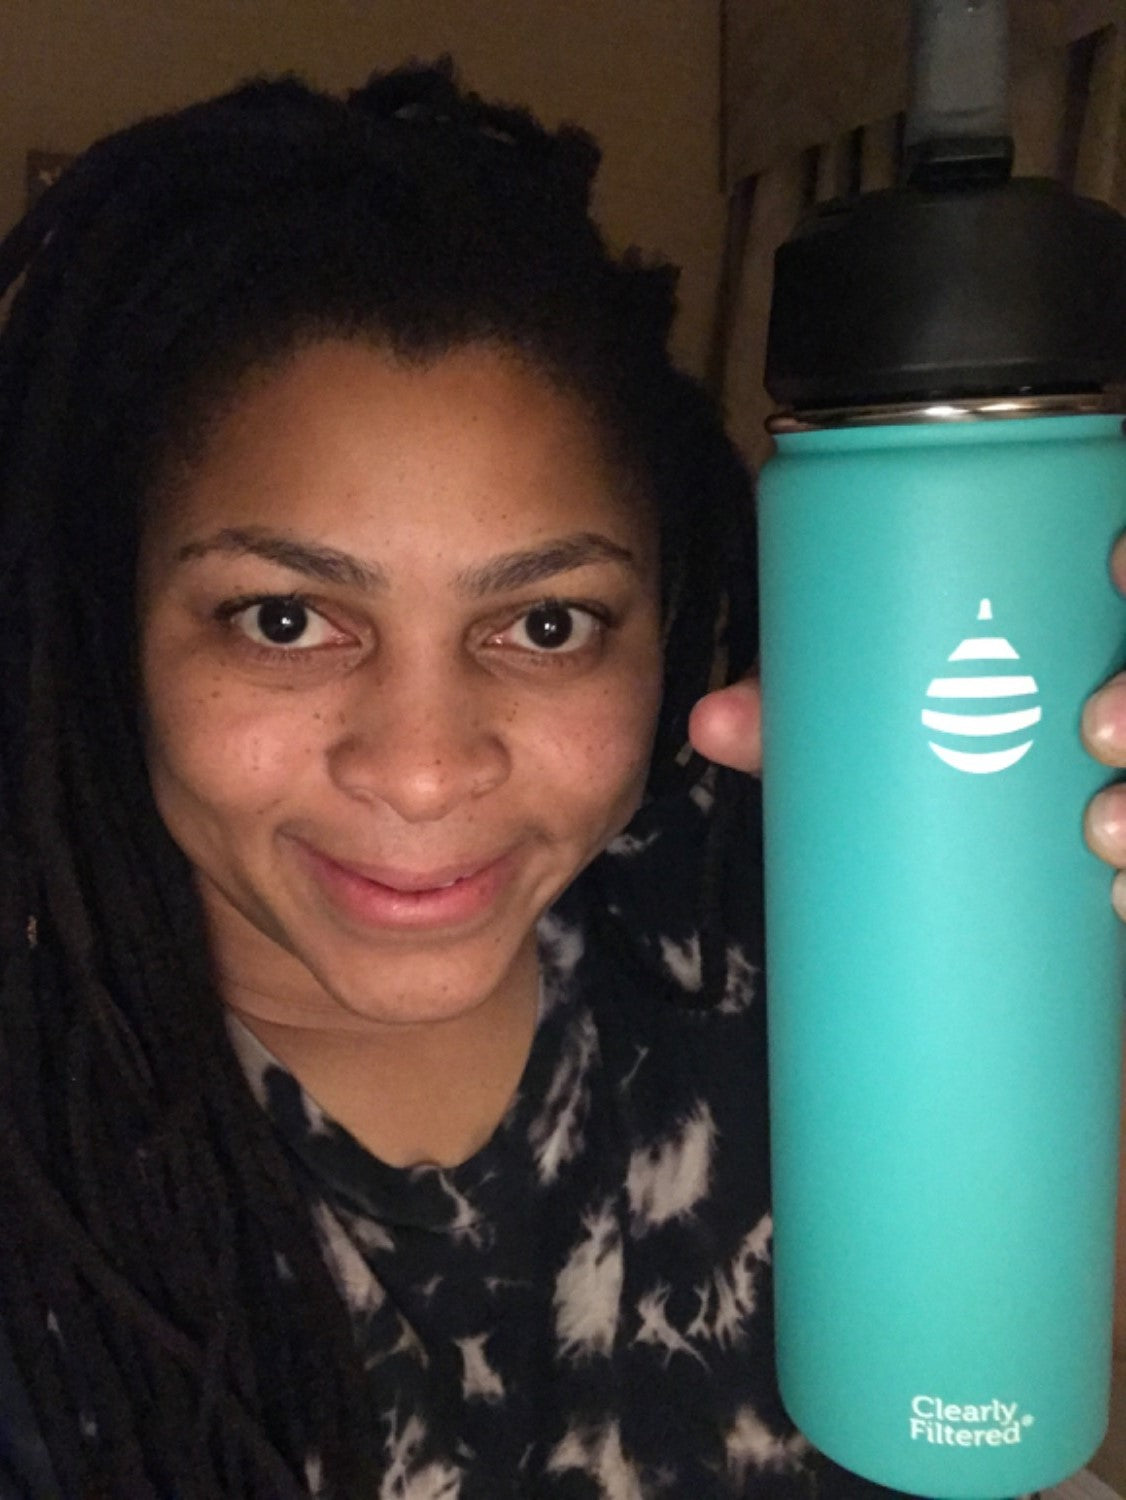 Review of the Clearly Filtered Water Bottle